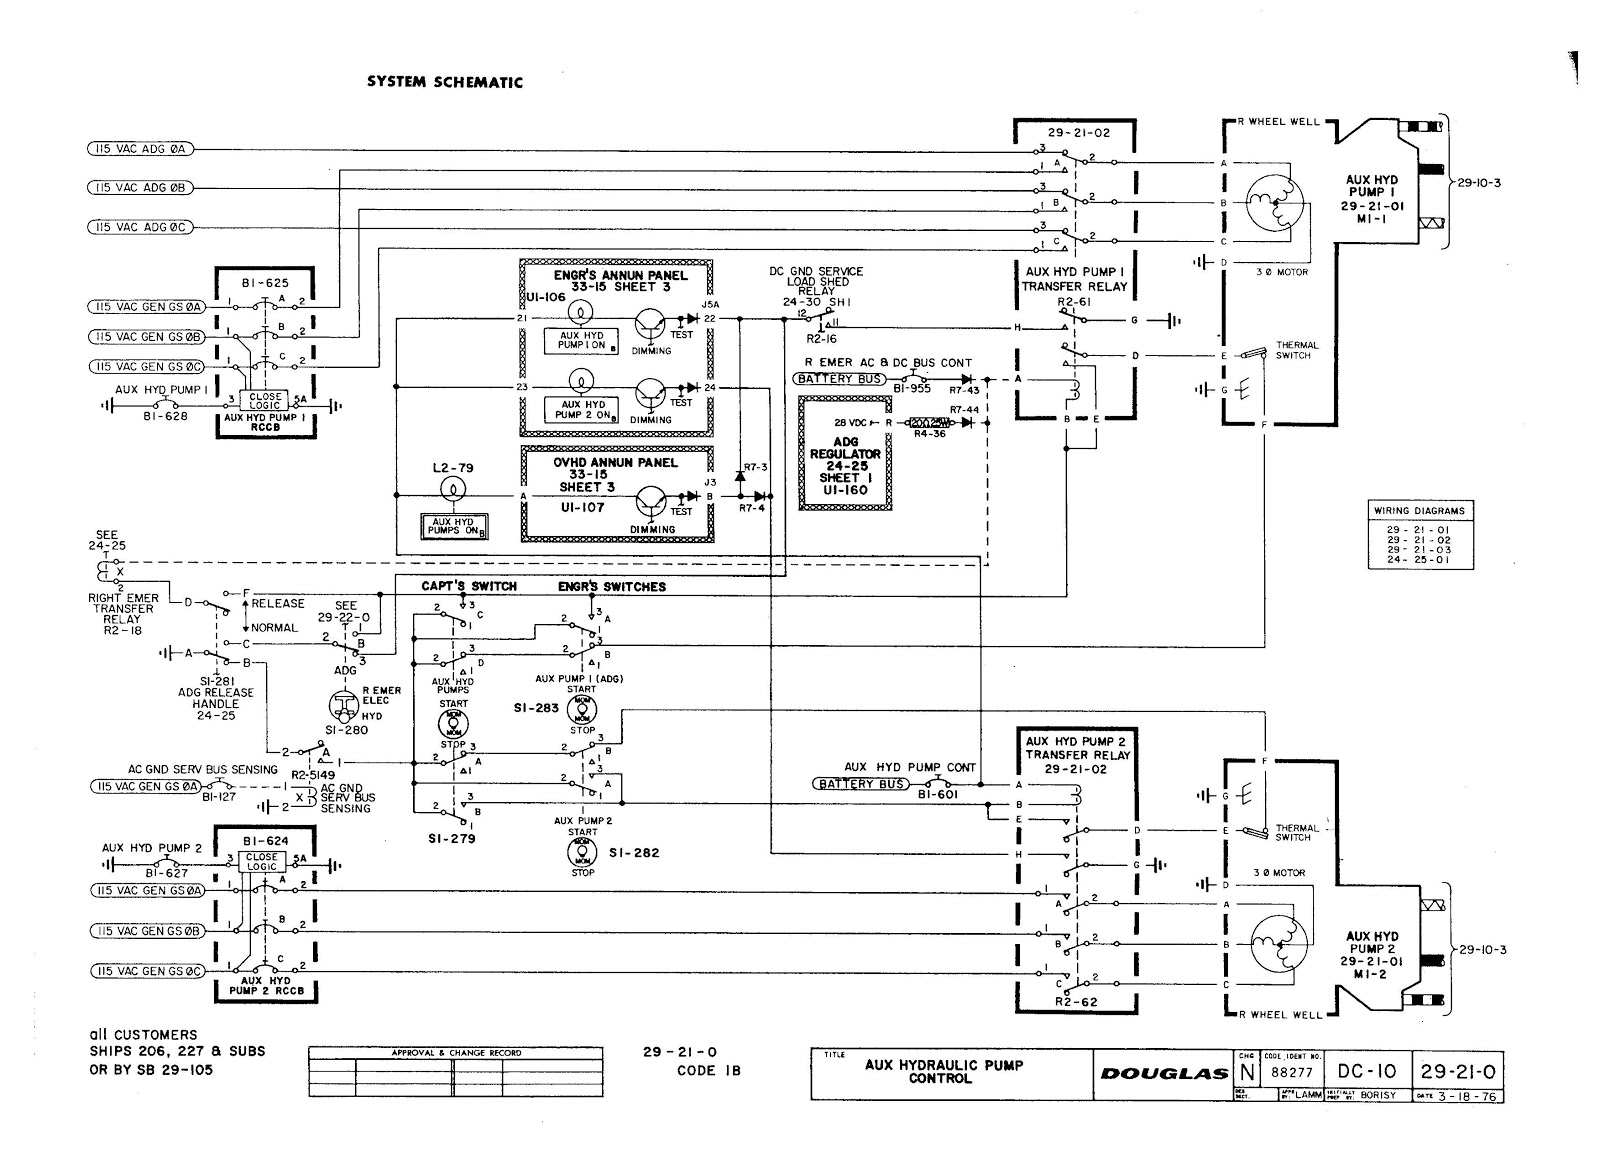 Schematic+diagram+dc+10+hydraulic+001 part 66 virtual school aircraft wiring and schematic diagrams reading wiring diagram at fashall.co